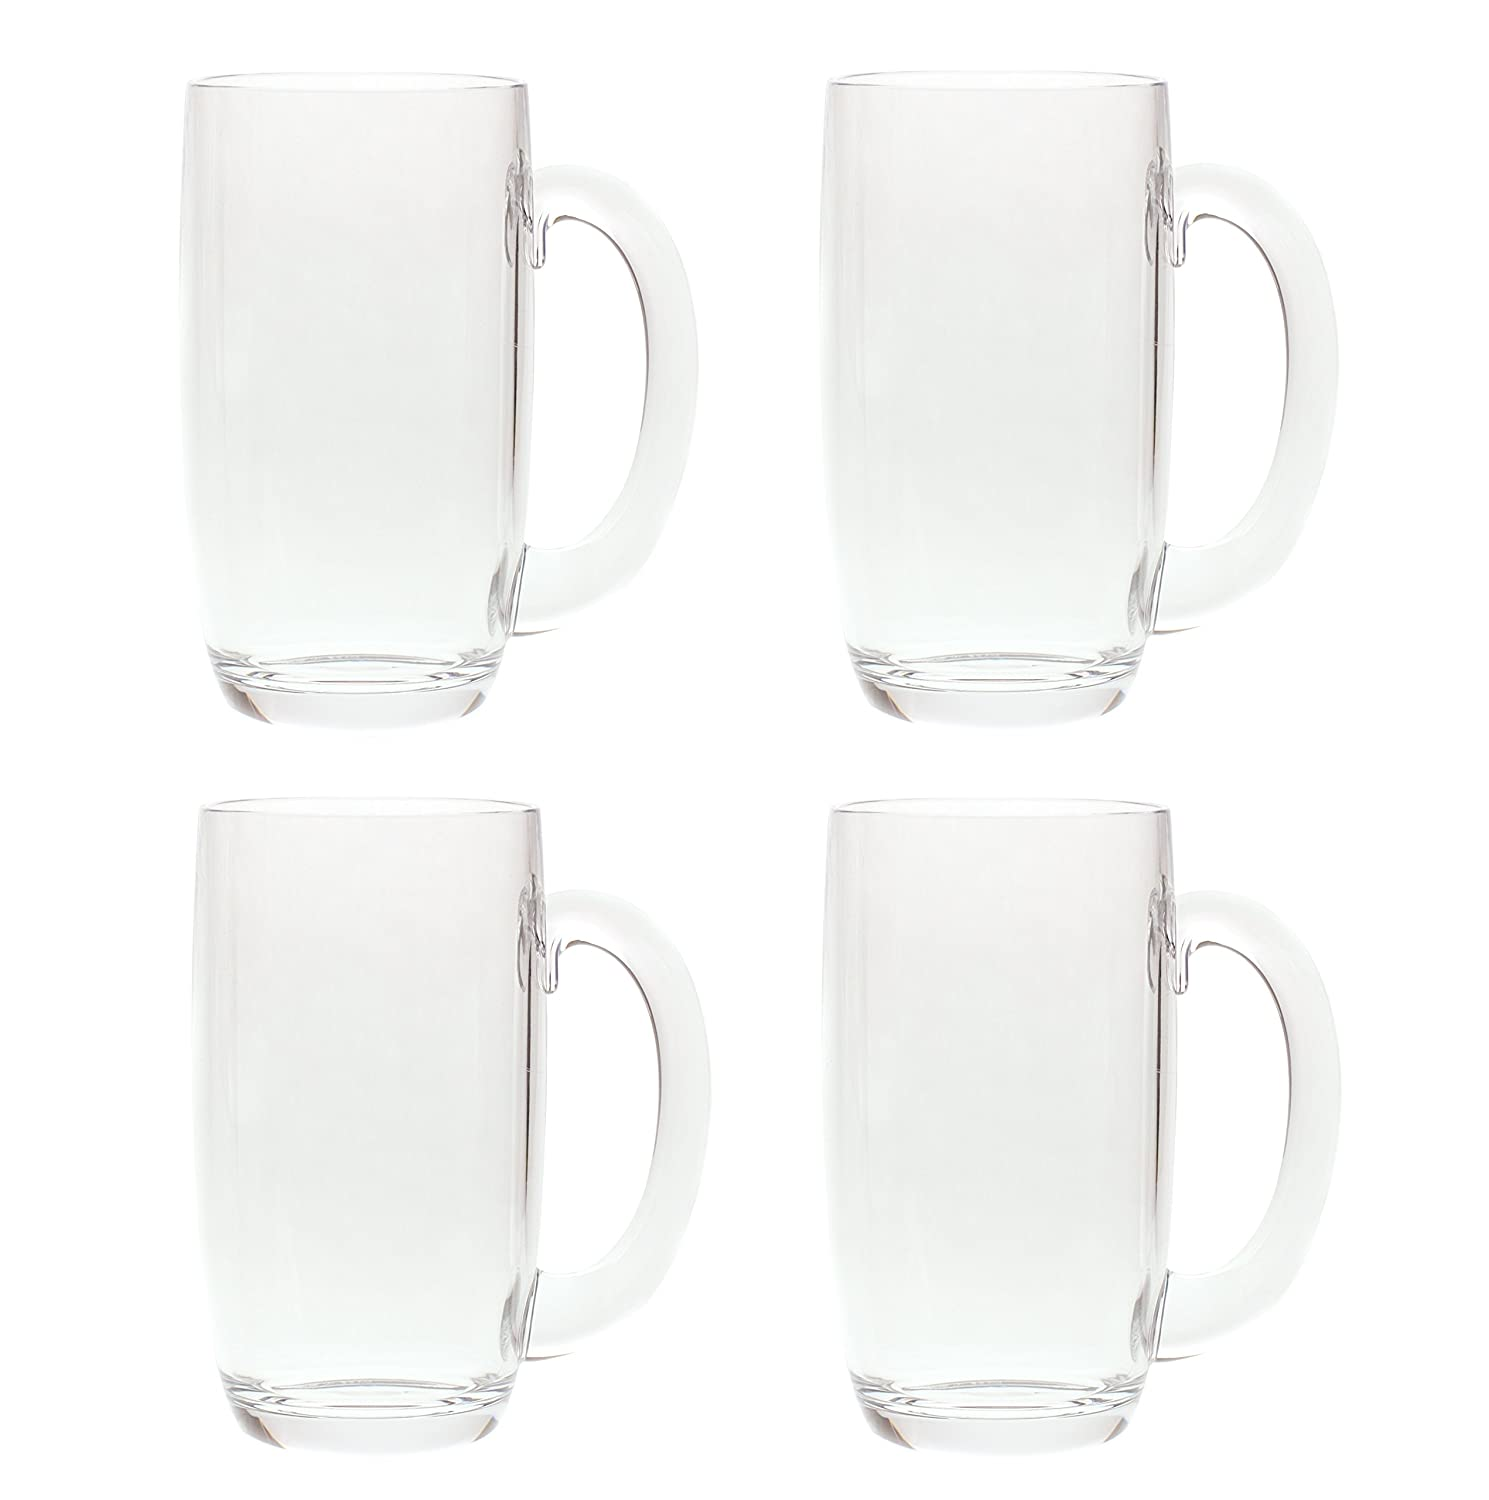 QG 21 Ounces Clear Acrylic Plastic Drinking Beer Mug Set of 4 88711-CL4P